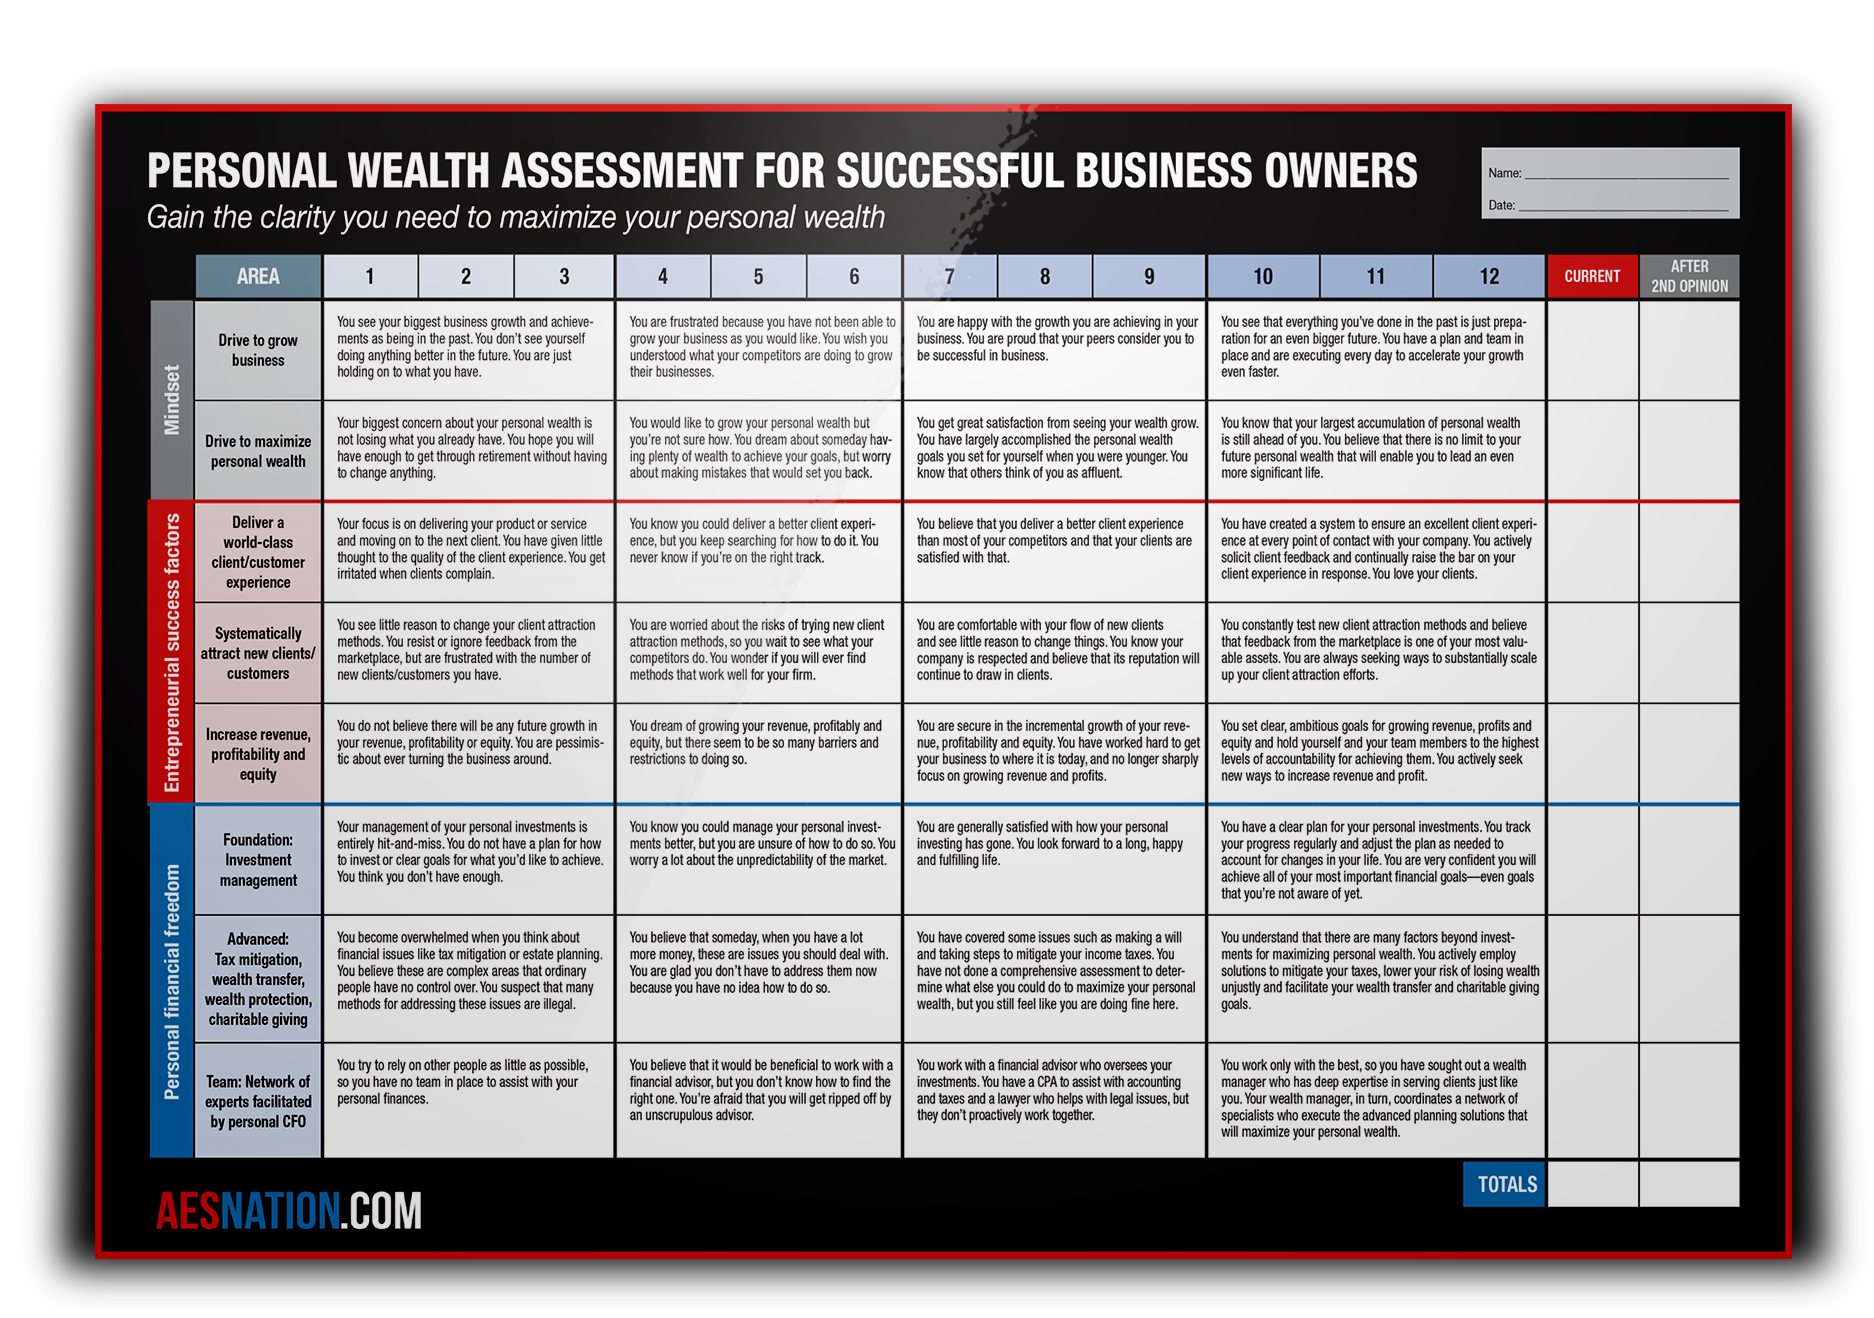 PERSONAL WEALTH ASSESSMENT